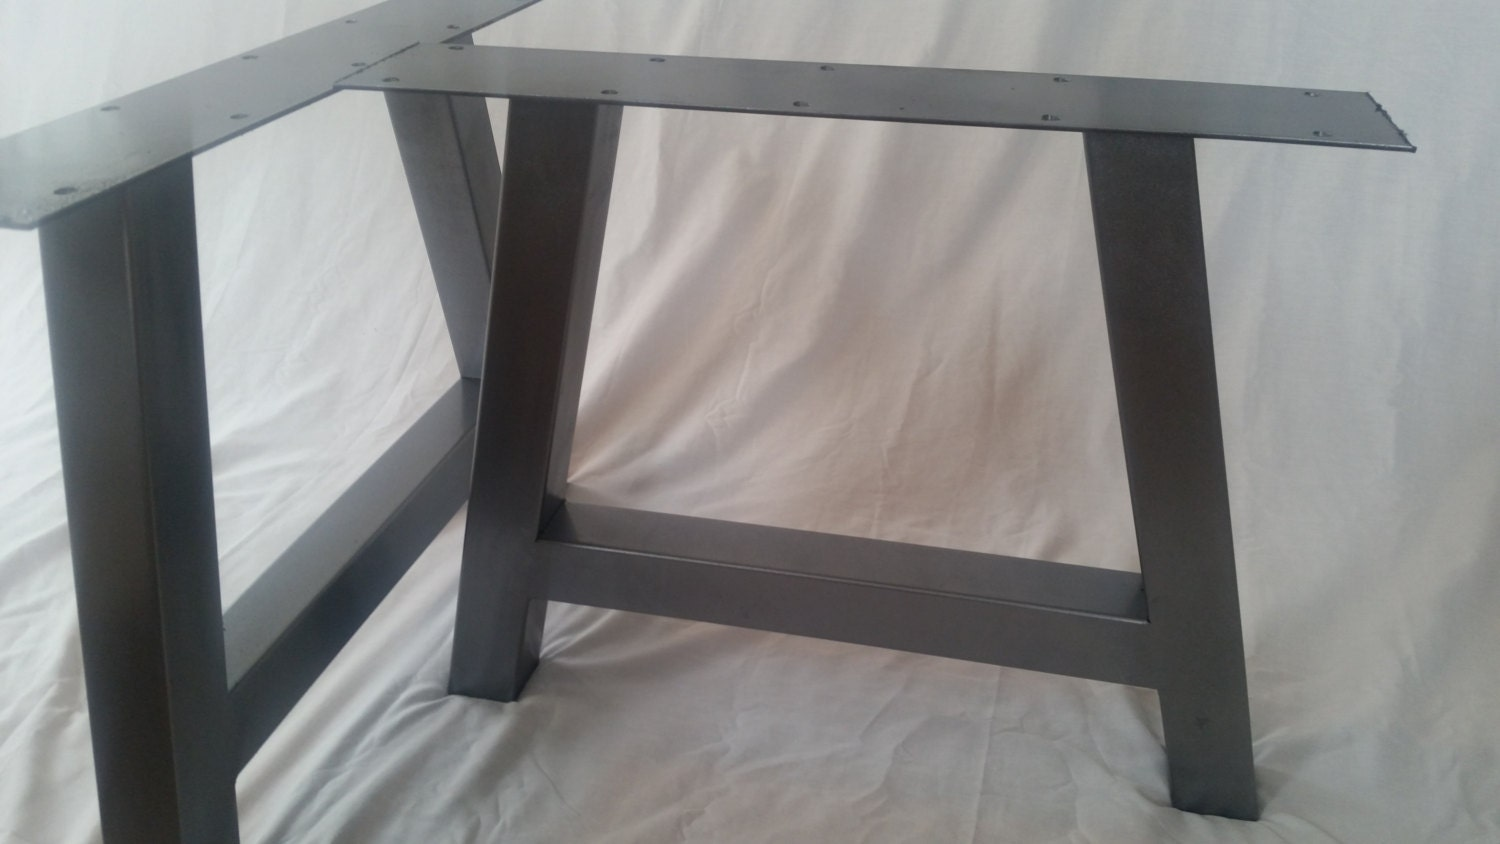 metal table legs a frame table legs by basemetaldesign on etsy